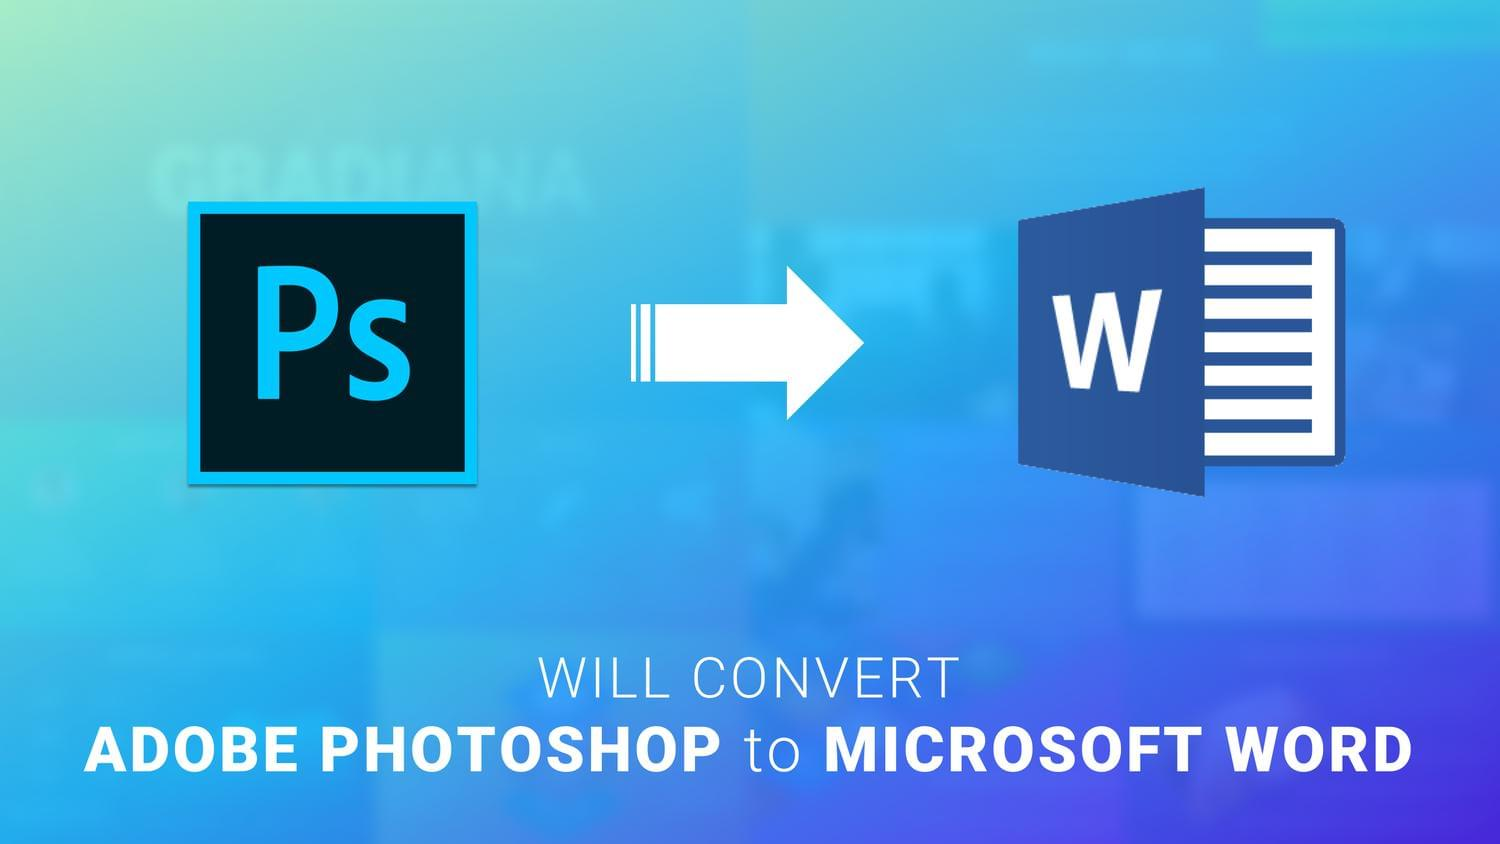 Convert Adobe Photoshop To Microsoft Word by arvaone - 113580